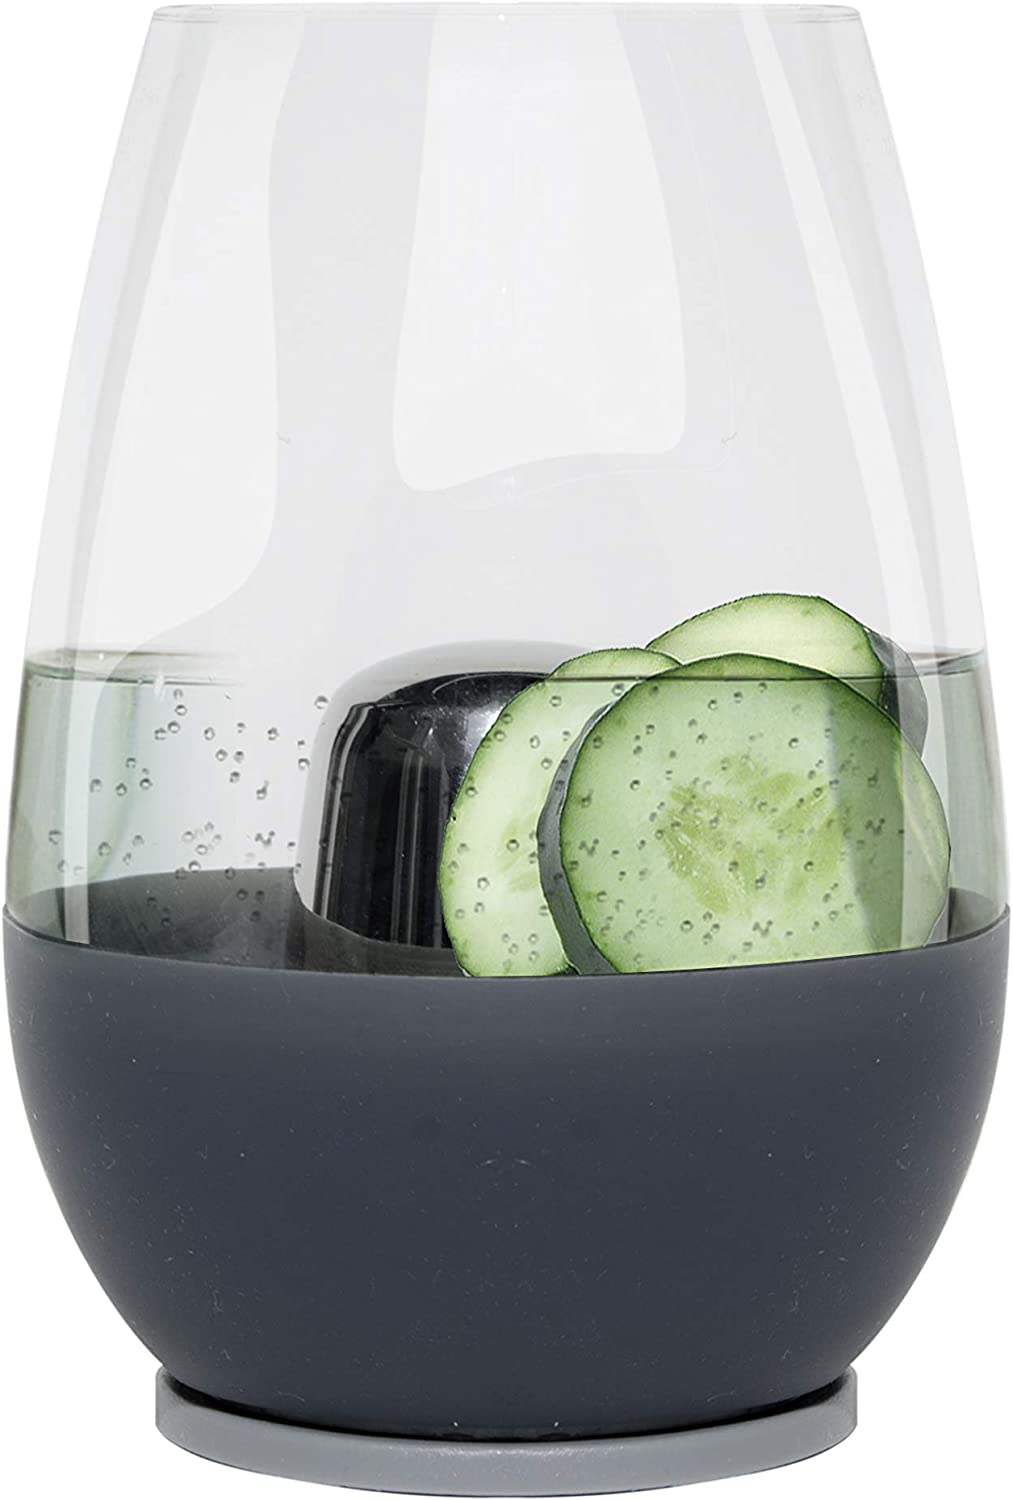 Soireehome Dimple Stemless, Set of 1 Glass and Chilling Cone, 150% More Cooling Capacity